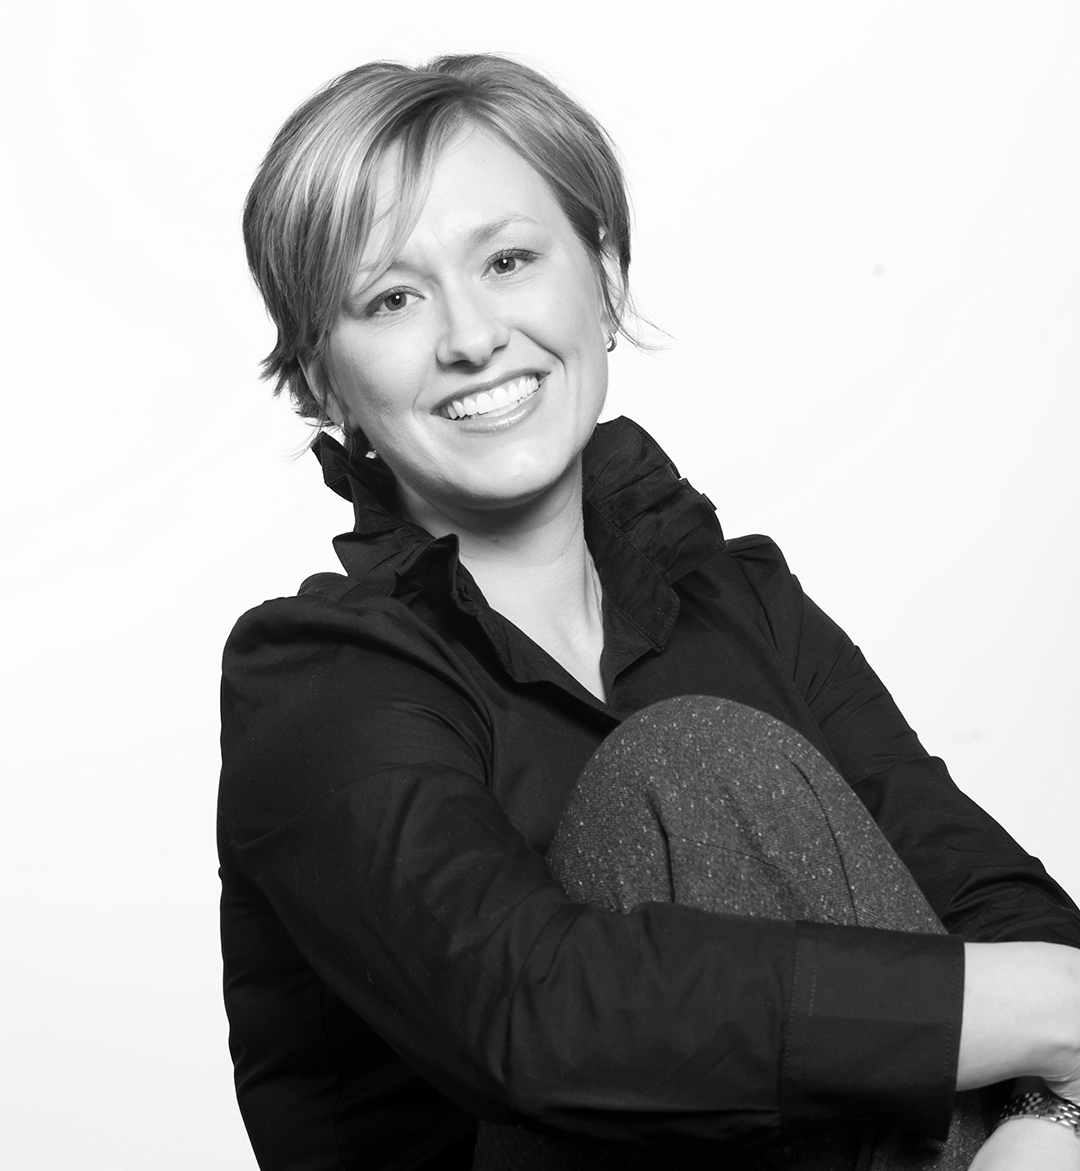 Tracy Smith,Principal - With an intuitive design sense and attention to detail, Tracy Smith has worked with large, well-established brands as well as small, fledgling start-ups focusing her practice on multidisciplinary marketing, branding design and development. Tracy launched her career in the commercial advertising industry in New York City before moving to Upstate New York to spend more than a decade working for the global fine paper company, Mohawk Fine Papers. In 2012, she left everything behind to launch her own branding, design and marketing firm, Smith & Co. Creative. Her client list includes Mercedes-Benz, Bristol Myers Squibb, Abbott Laboratories, YMCA, DoubleTree by Hilton, Pinhole Pro, Hotel North Woods, Ampersand Resort & Boat Club, Prestige Hospitality and many more...While paying clients are always a wonderful thing, Tracy is also passionate about volunteering her time and talents for a wide variety of non-profit organizations who's missions match her passions. She is particularly passionate about organizations in arts, design and culture as well as those who's top priority is the care, education and enrichment of children - both locally and around the world. In the rare event these two missions come together in one organization, she often finds she can't say